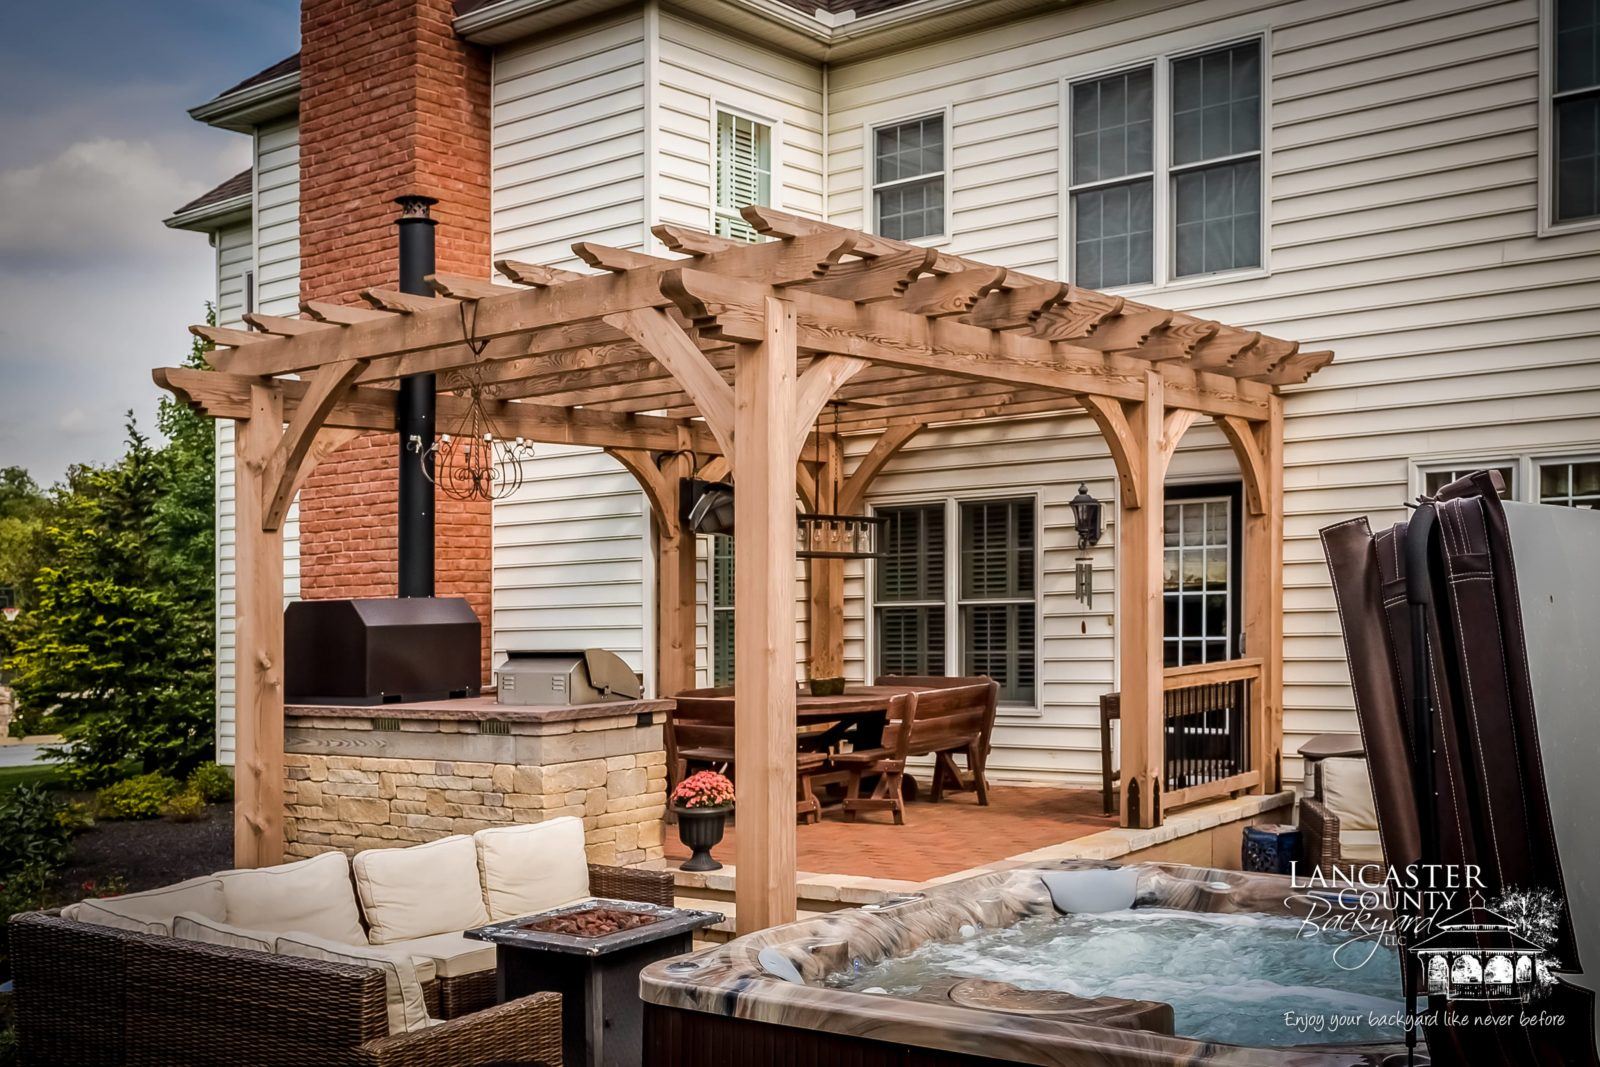 backyard pergola on a porch made from heavy wood